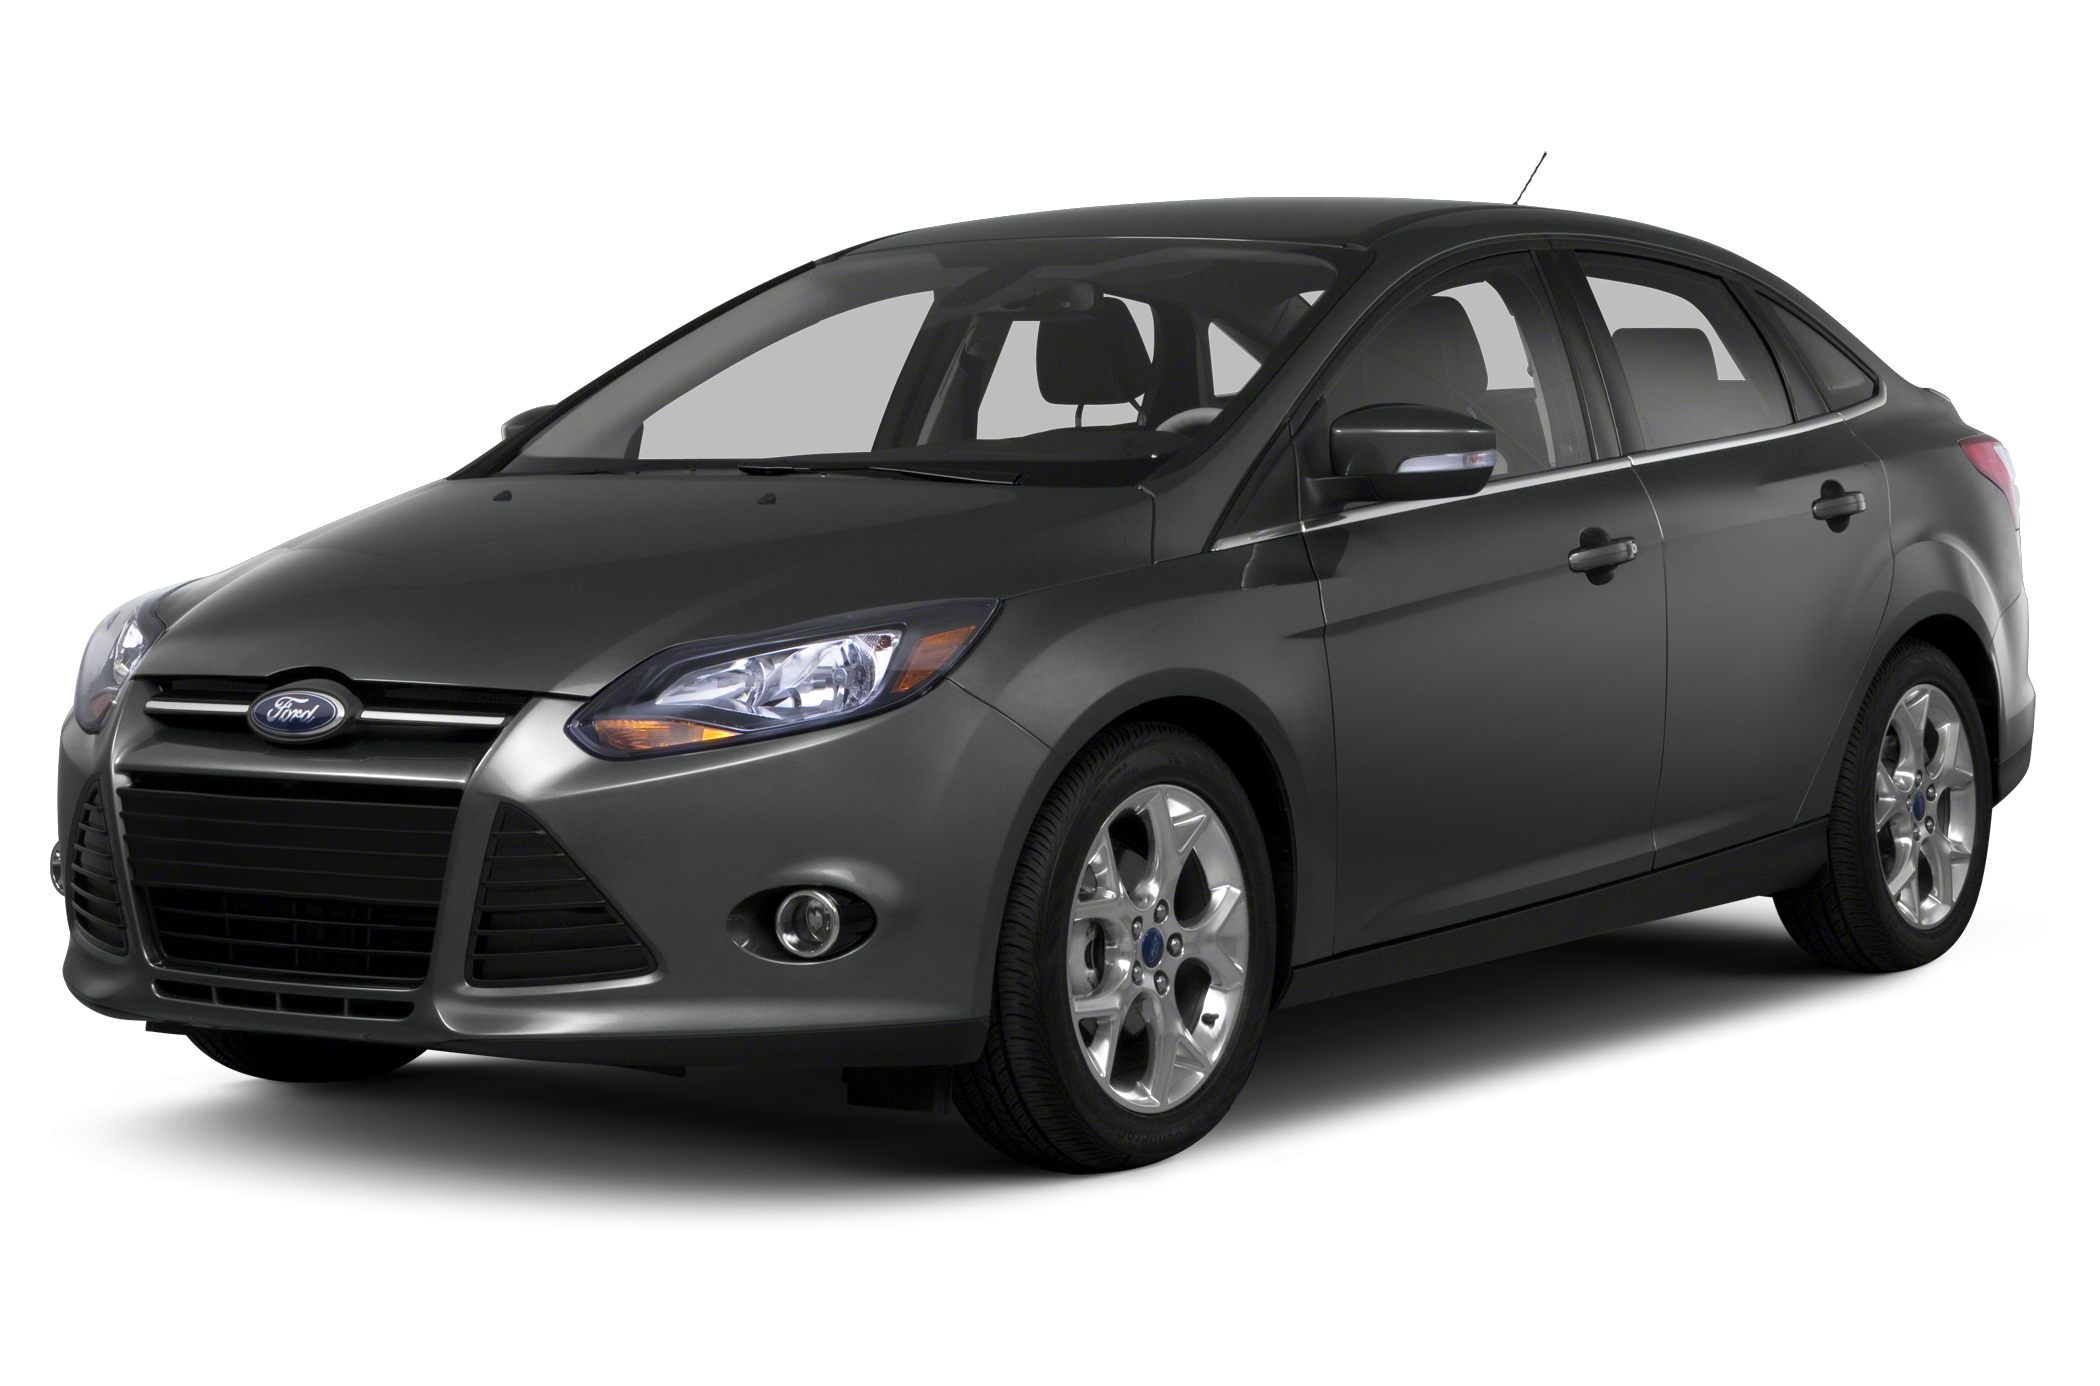 2013 Ford Focus SE Sedan for sale in Malone for $16,075 with 17,626 miles.